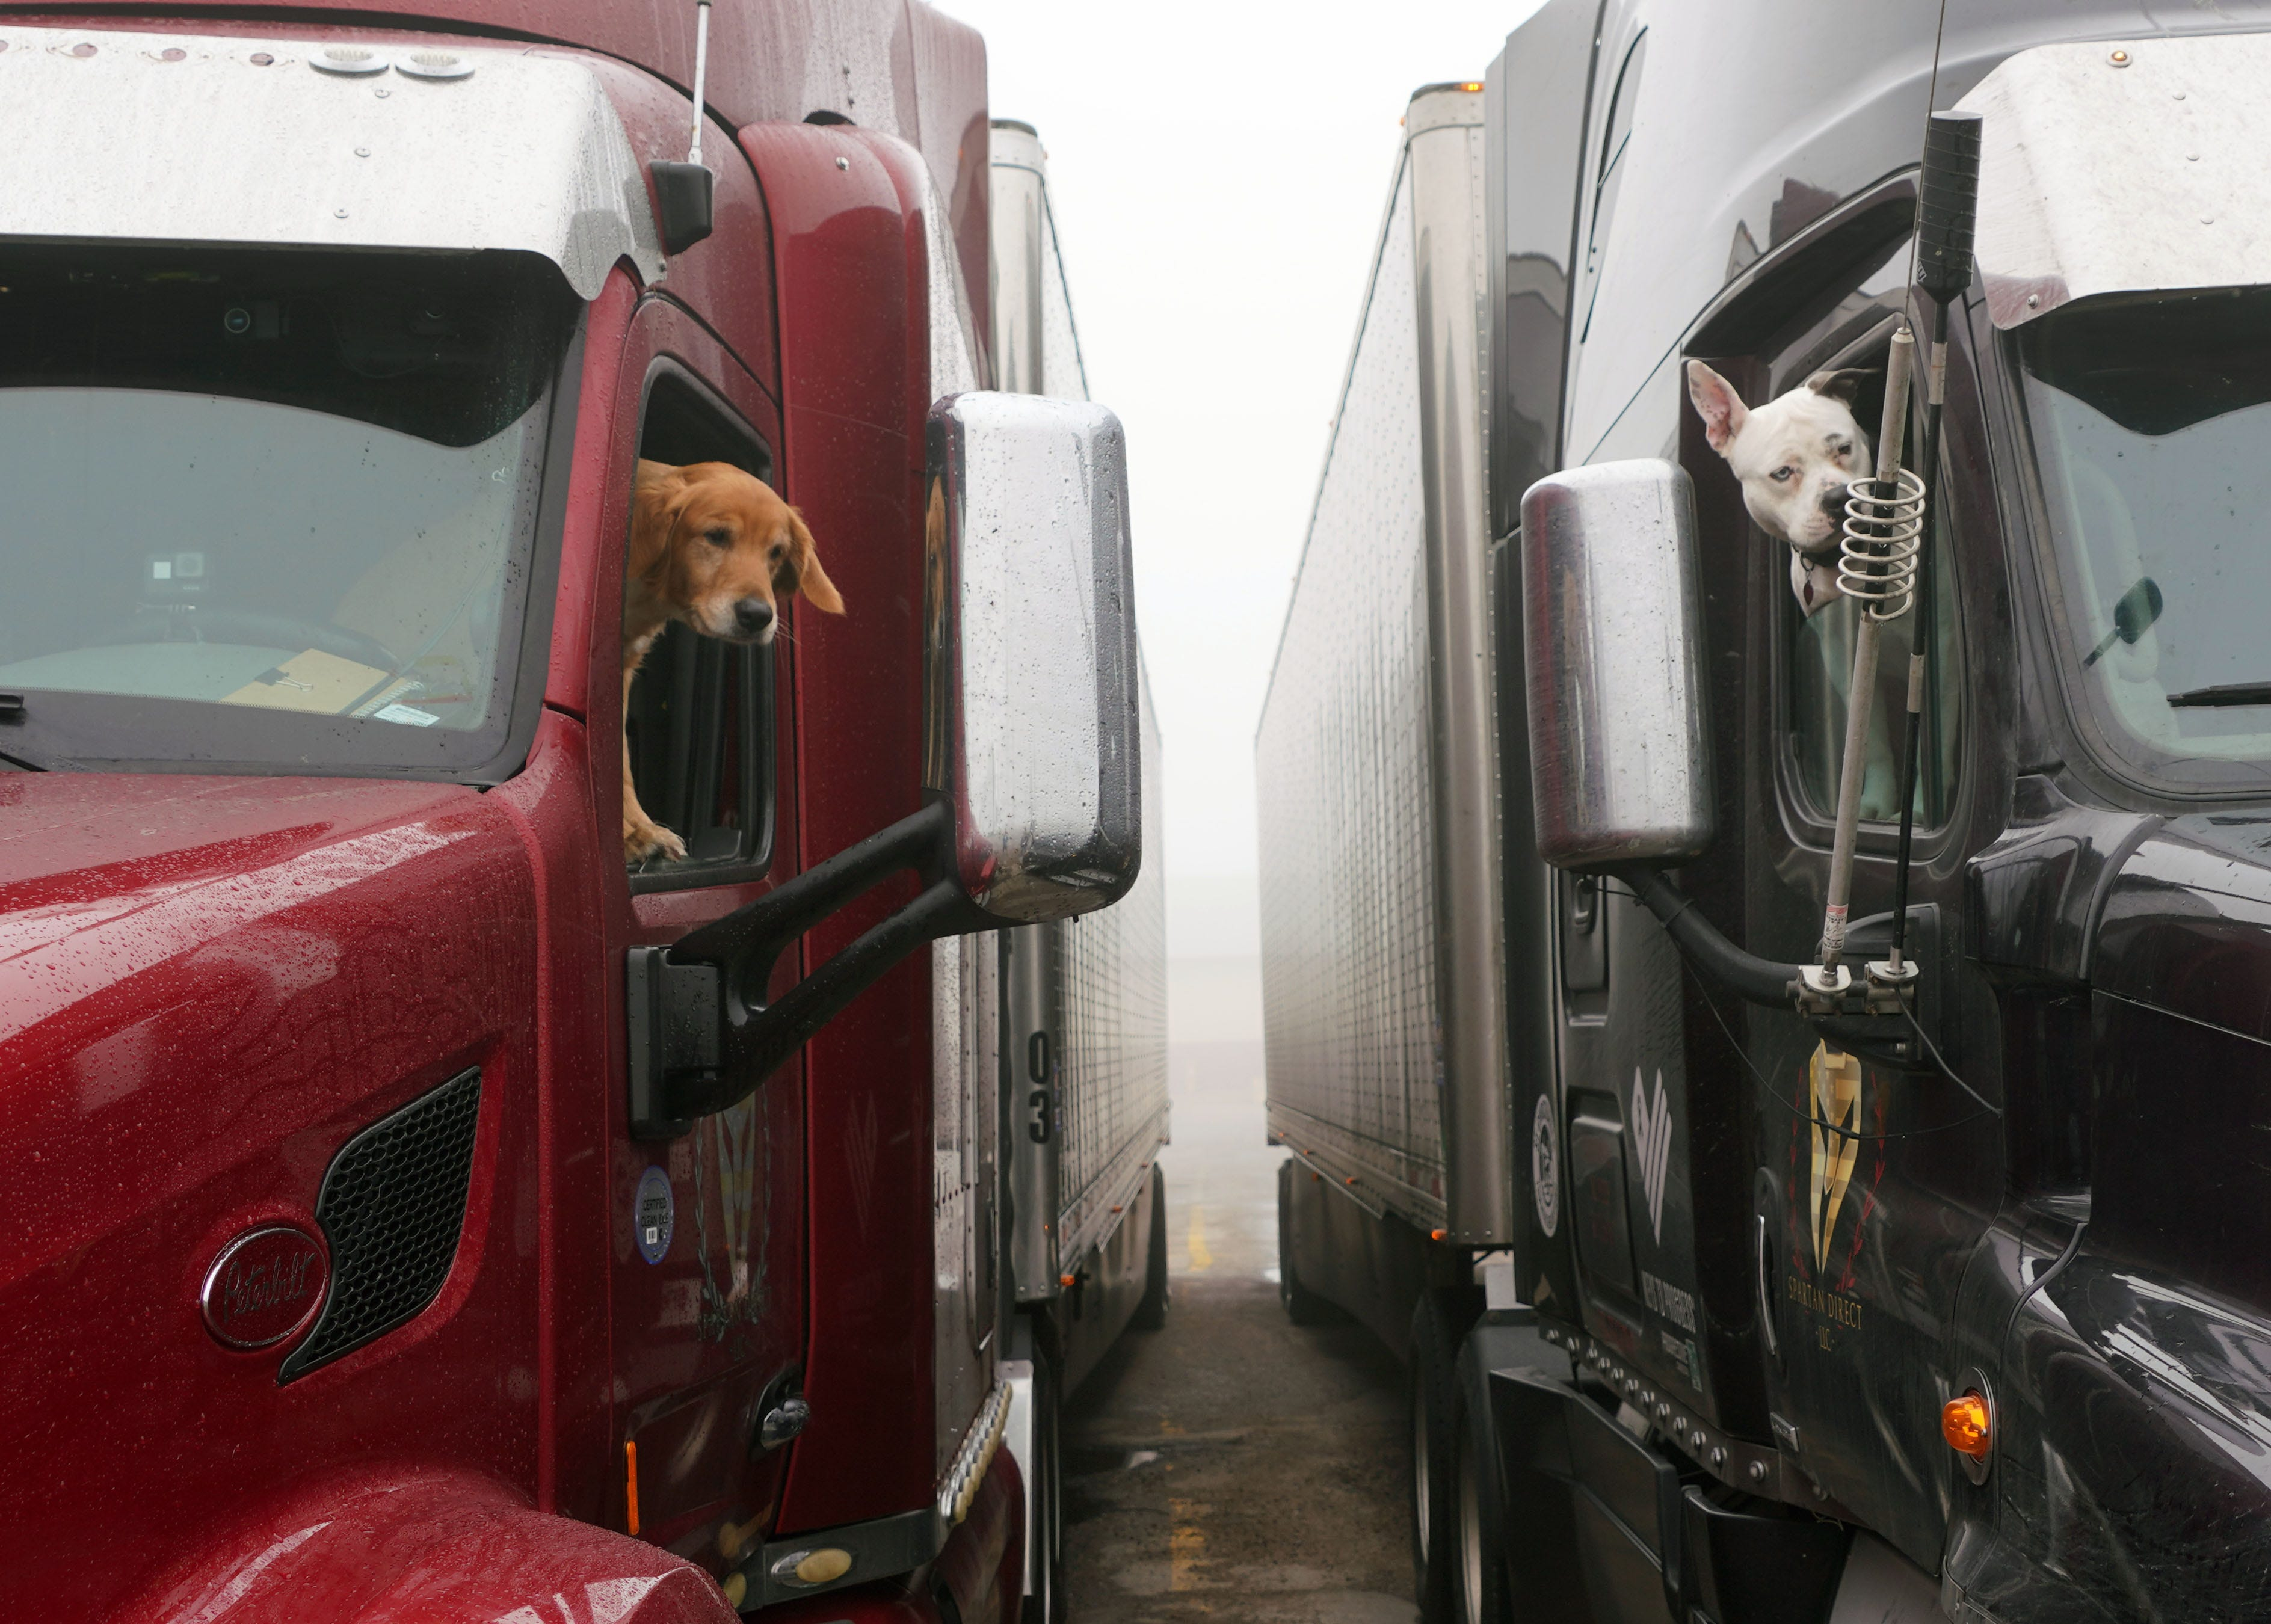 Truck dogs Oliver, left, and Sergeant, look out the windows of their owners' trucks at a rest stop near Cheyenne, Wyoming.